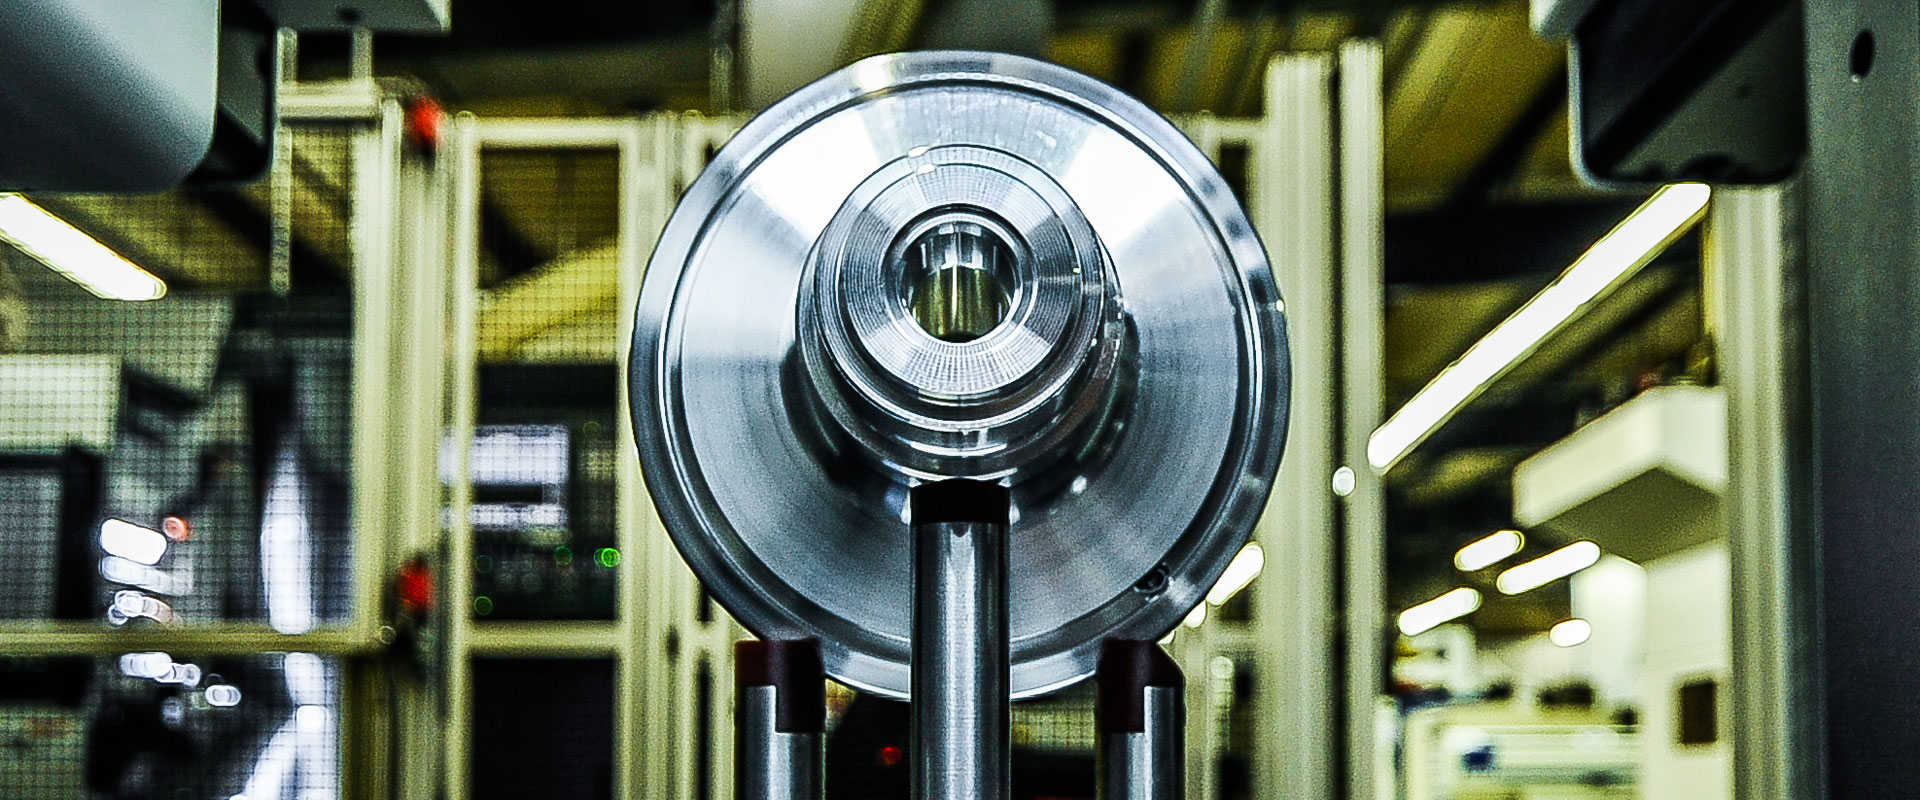 One of Northeast Tool's precisely manufactured metals